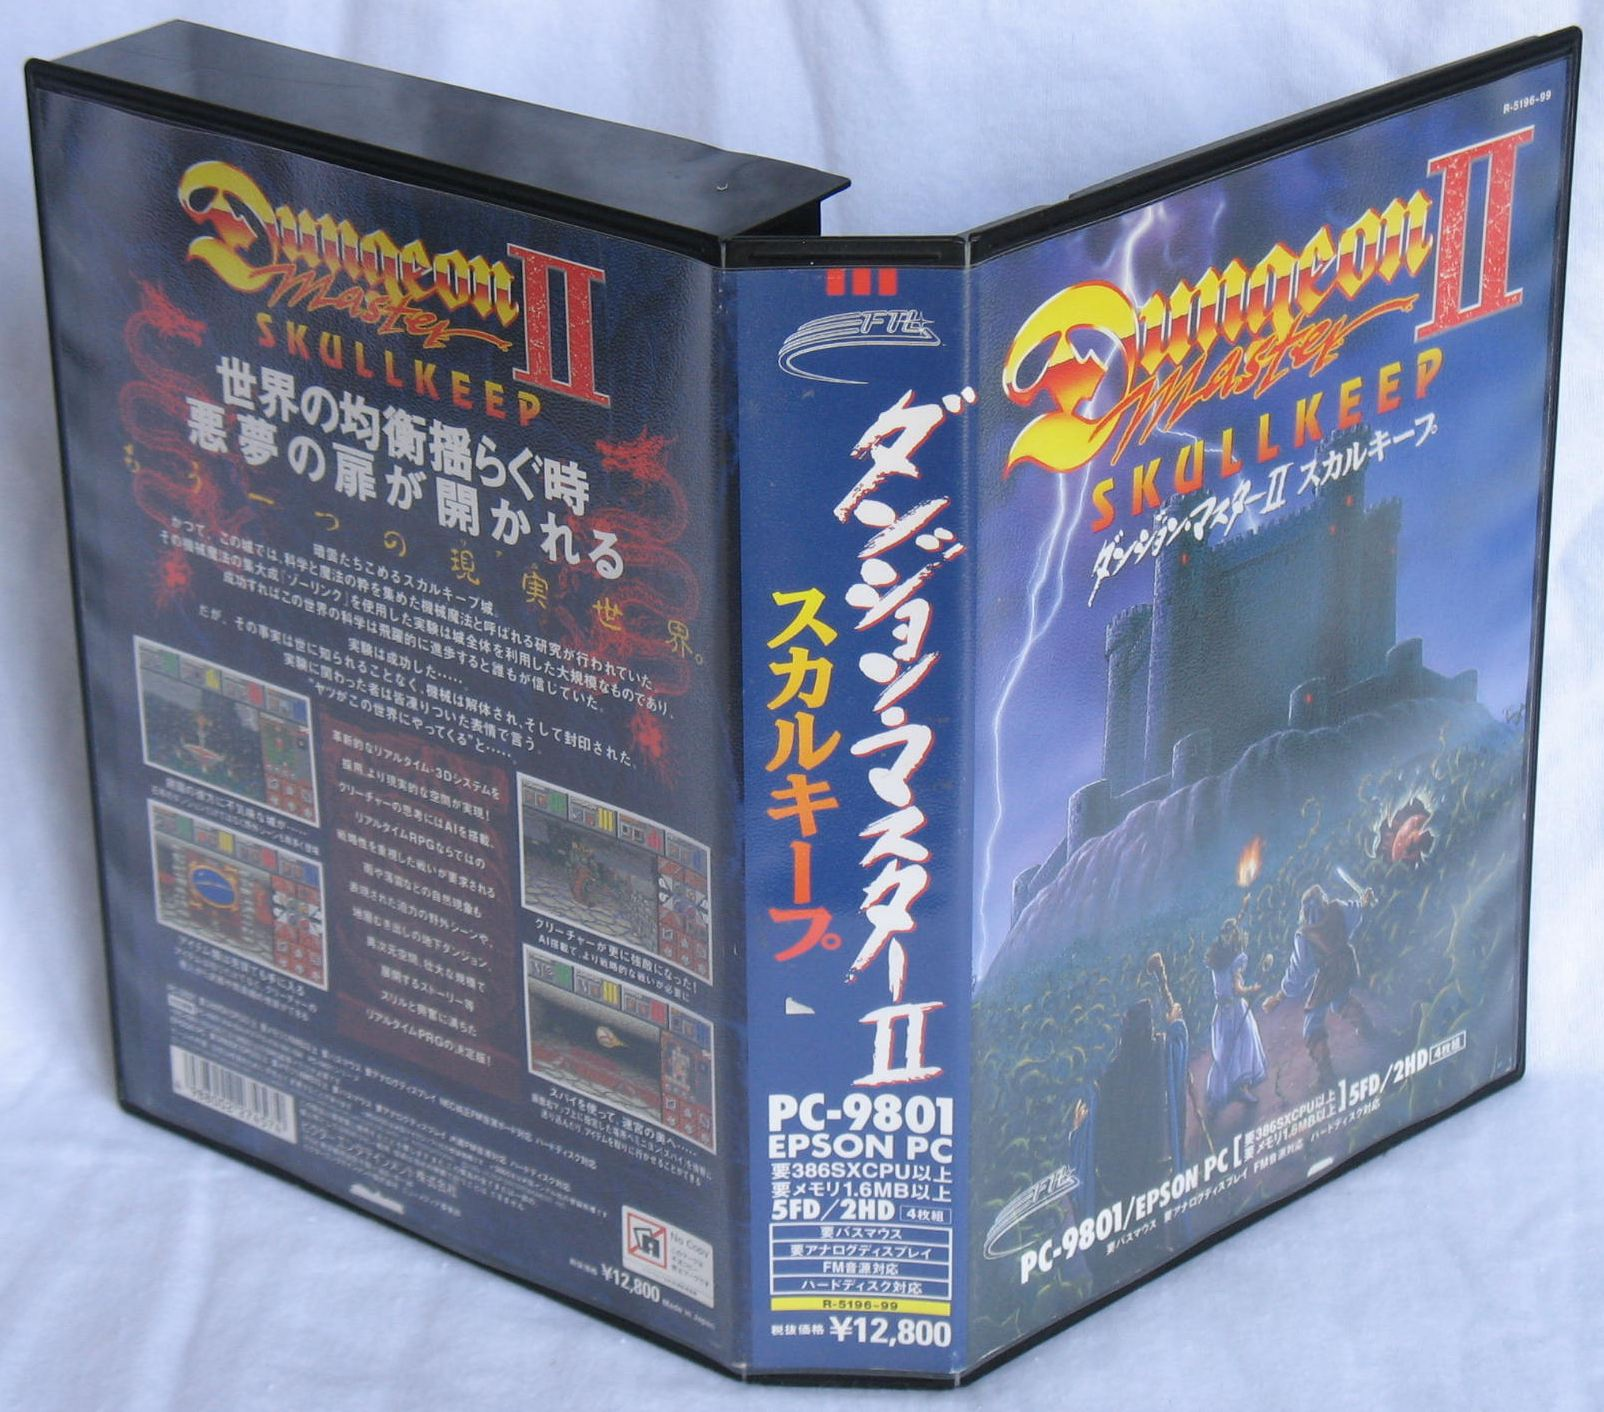 Game - Dungeon Master II - JP - PC-9801 - 5.25-inch - Box - Front Back Left Top - Photo